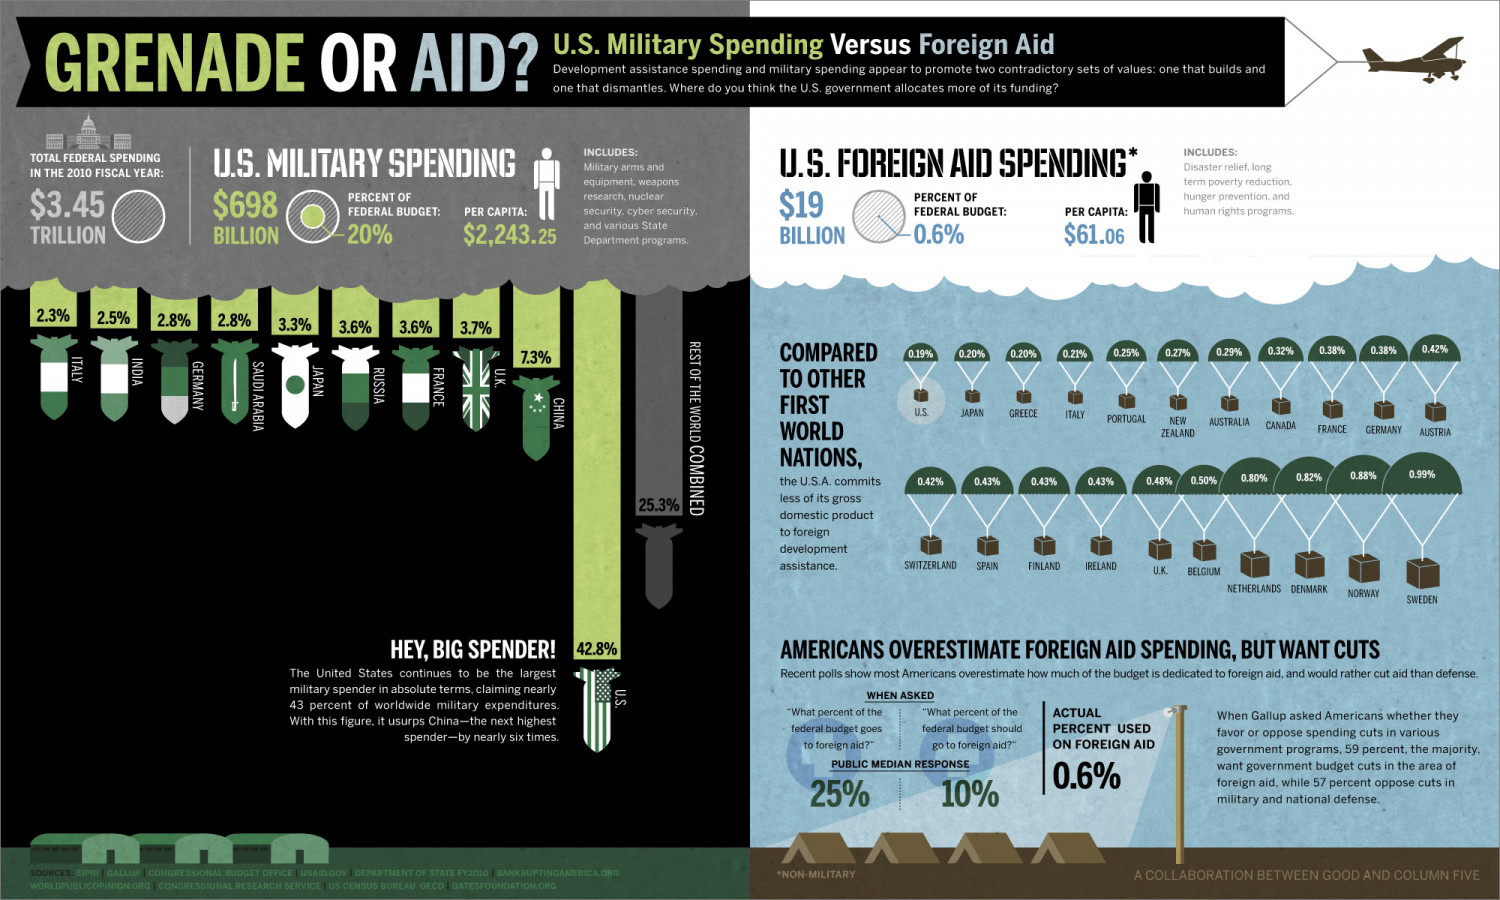 Grenade or Aid? Infographic